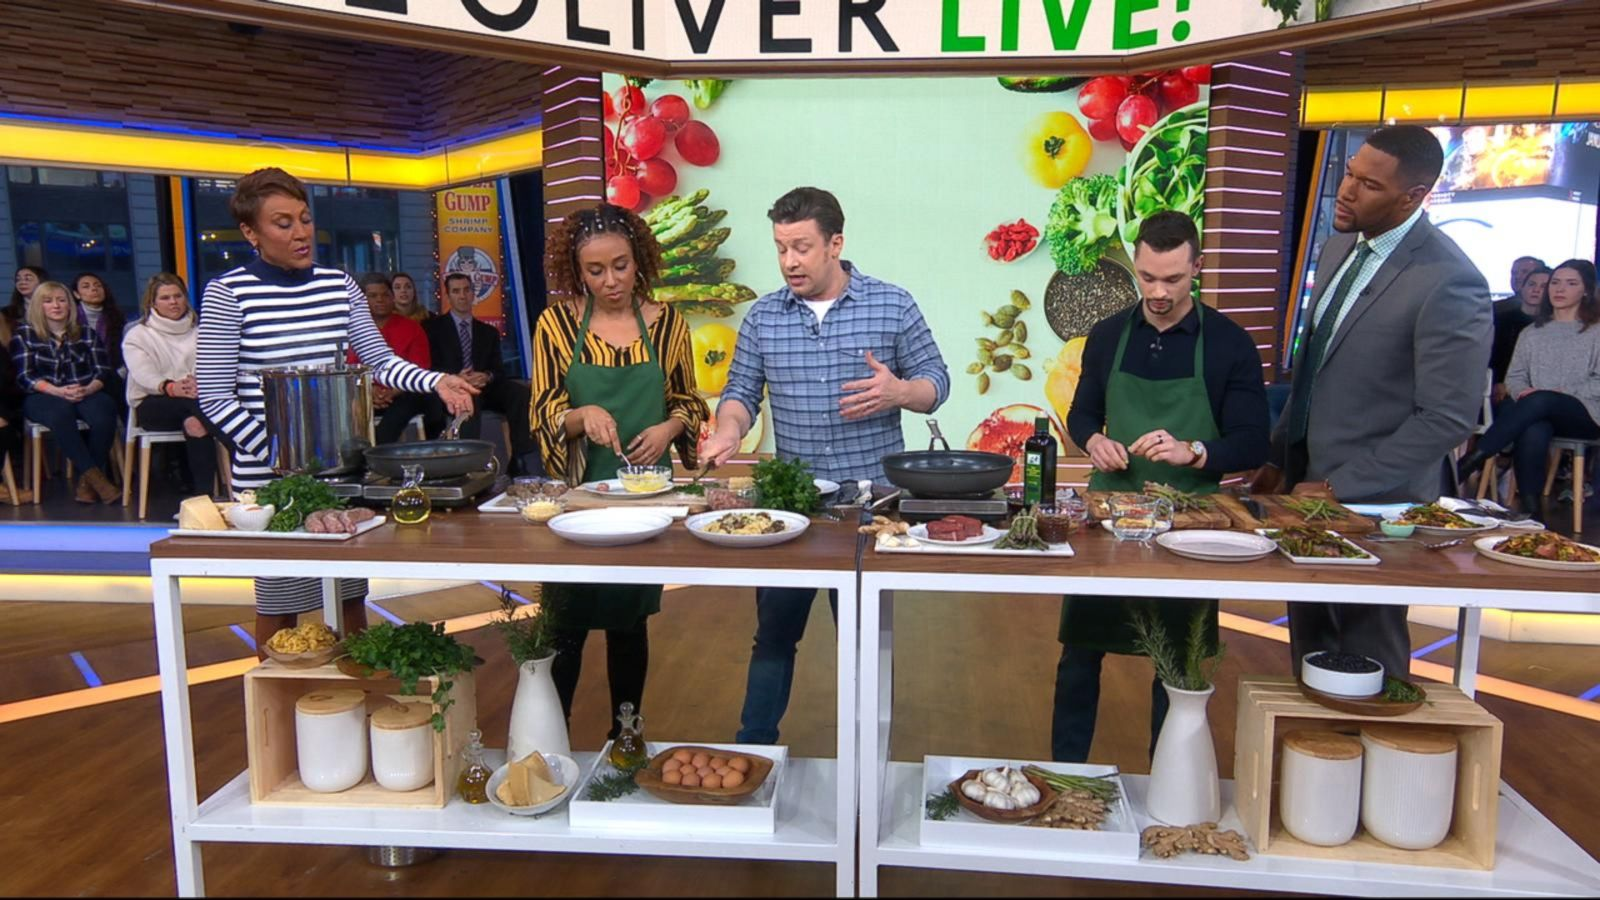 Jamie Oliver shares weeknight dinner recipes with just 5 ingredients